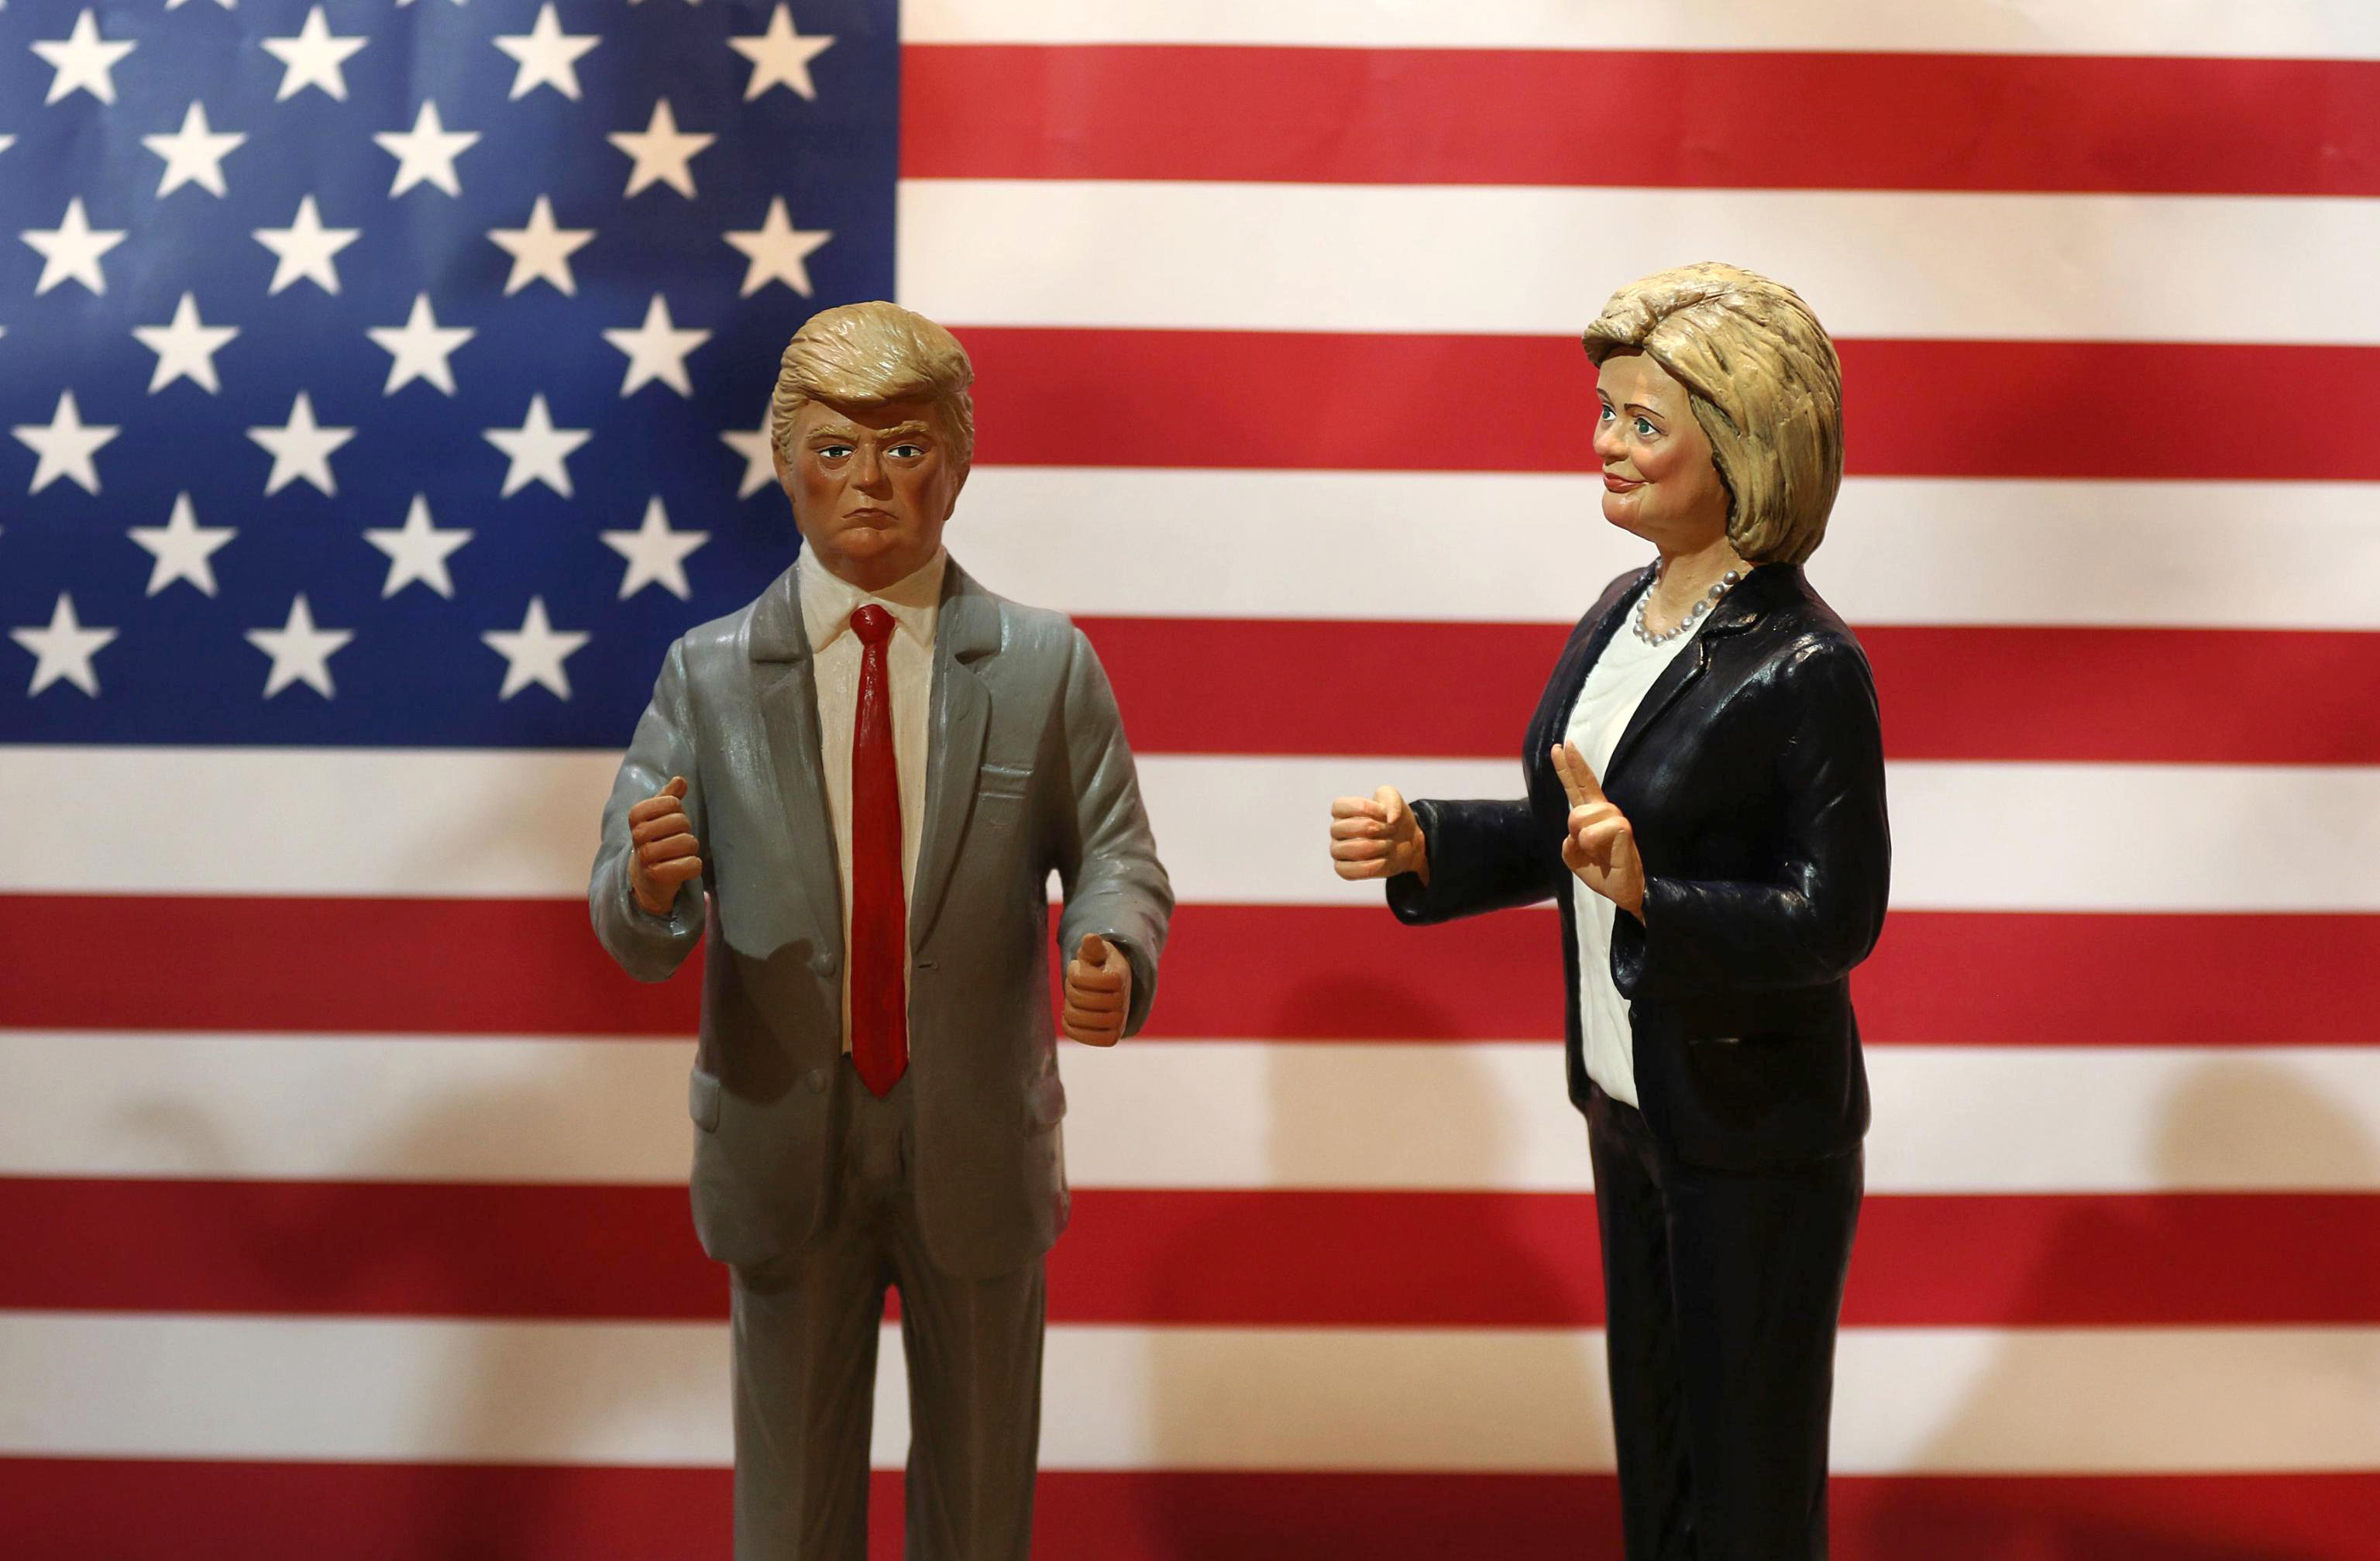 Statuettes depicting the presidential candidates Donald Trump, left, and Hillary Clinton are displayed in a shop in the renown Via San Gregorio Armeno, street of nativity scene craftsmen, in Naples, Italy, Tuesday, Oct. 18, 2016. On Nov. 8, Americans will vote for their next president. (Cesare Abbate/ANSA via AP)